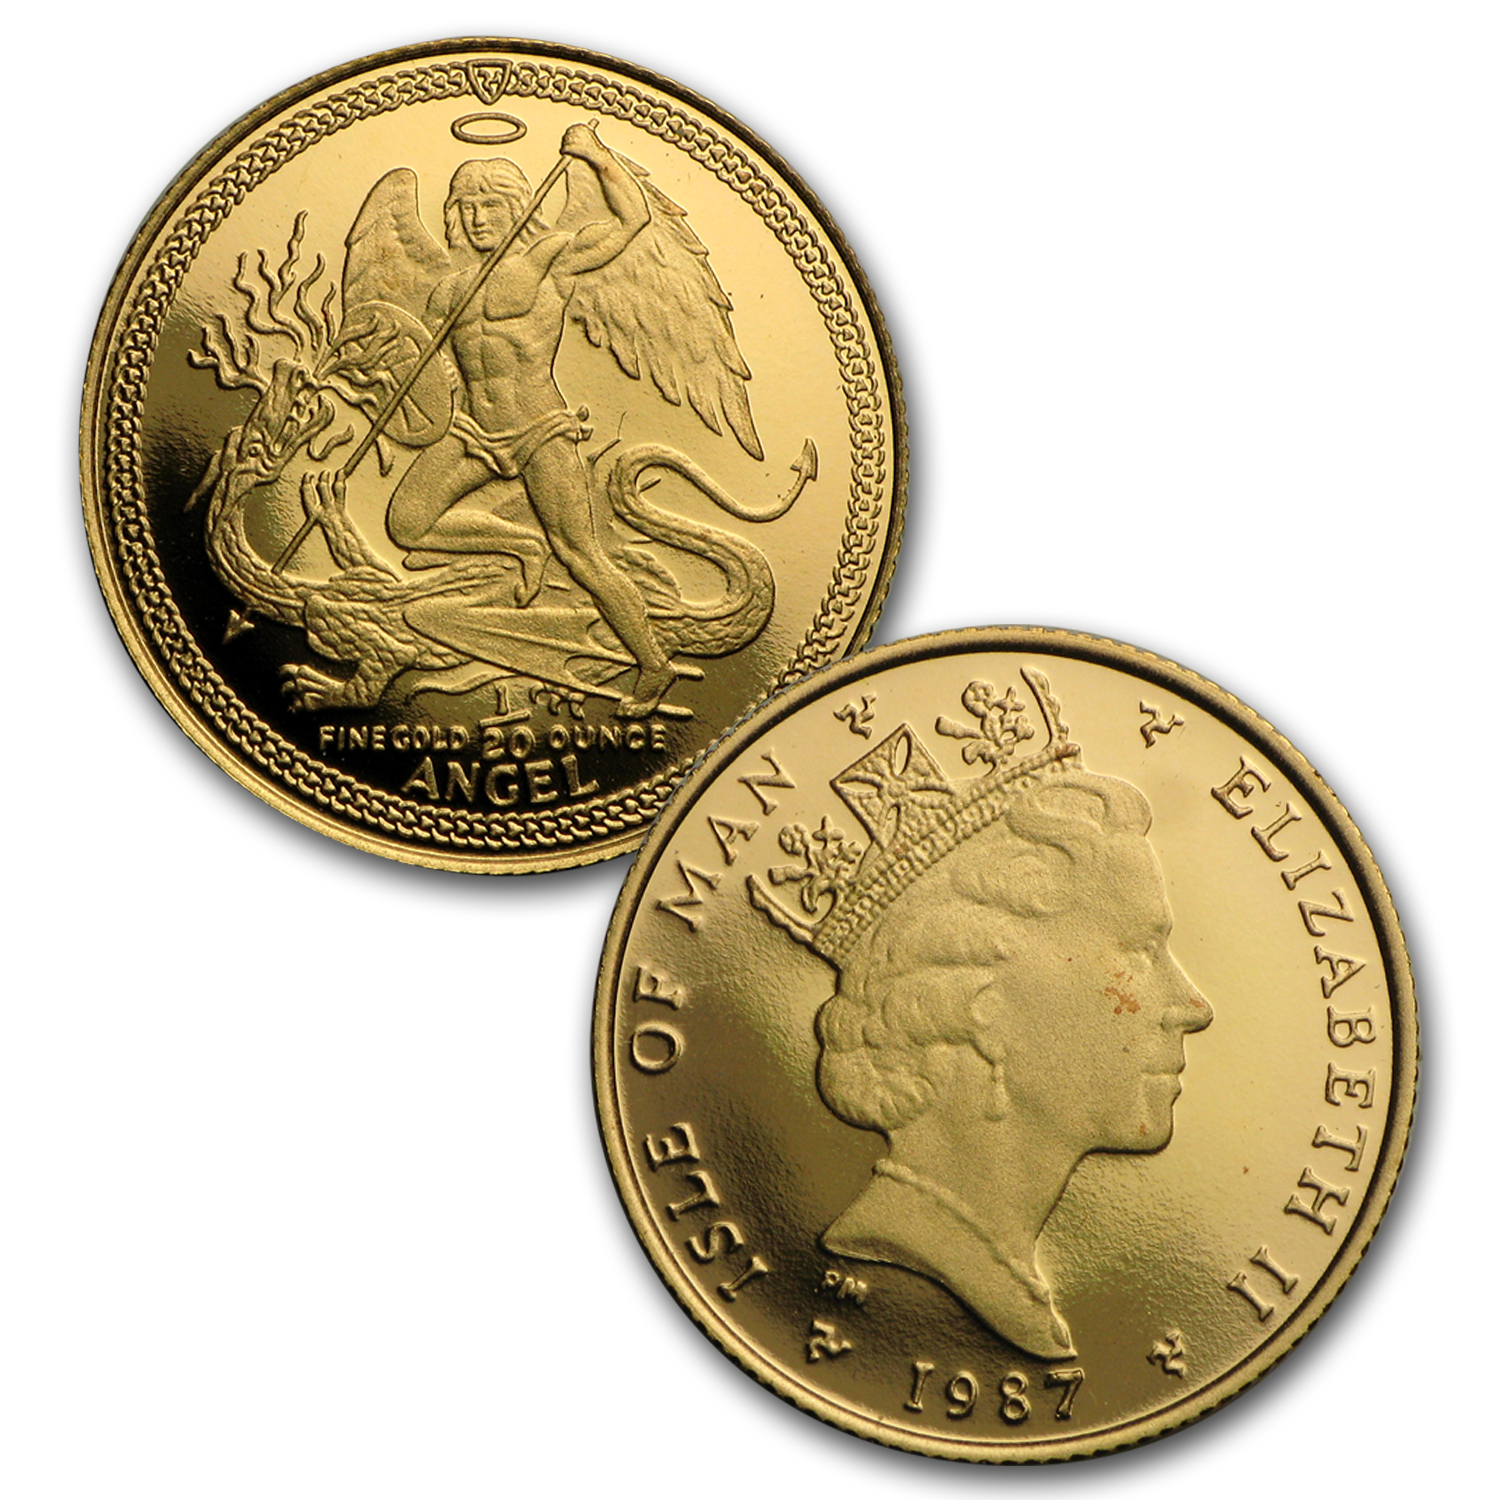 1987 Isle of Man 5-Coin Gold Angel Proof Set (No Box)